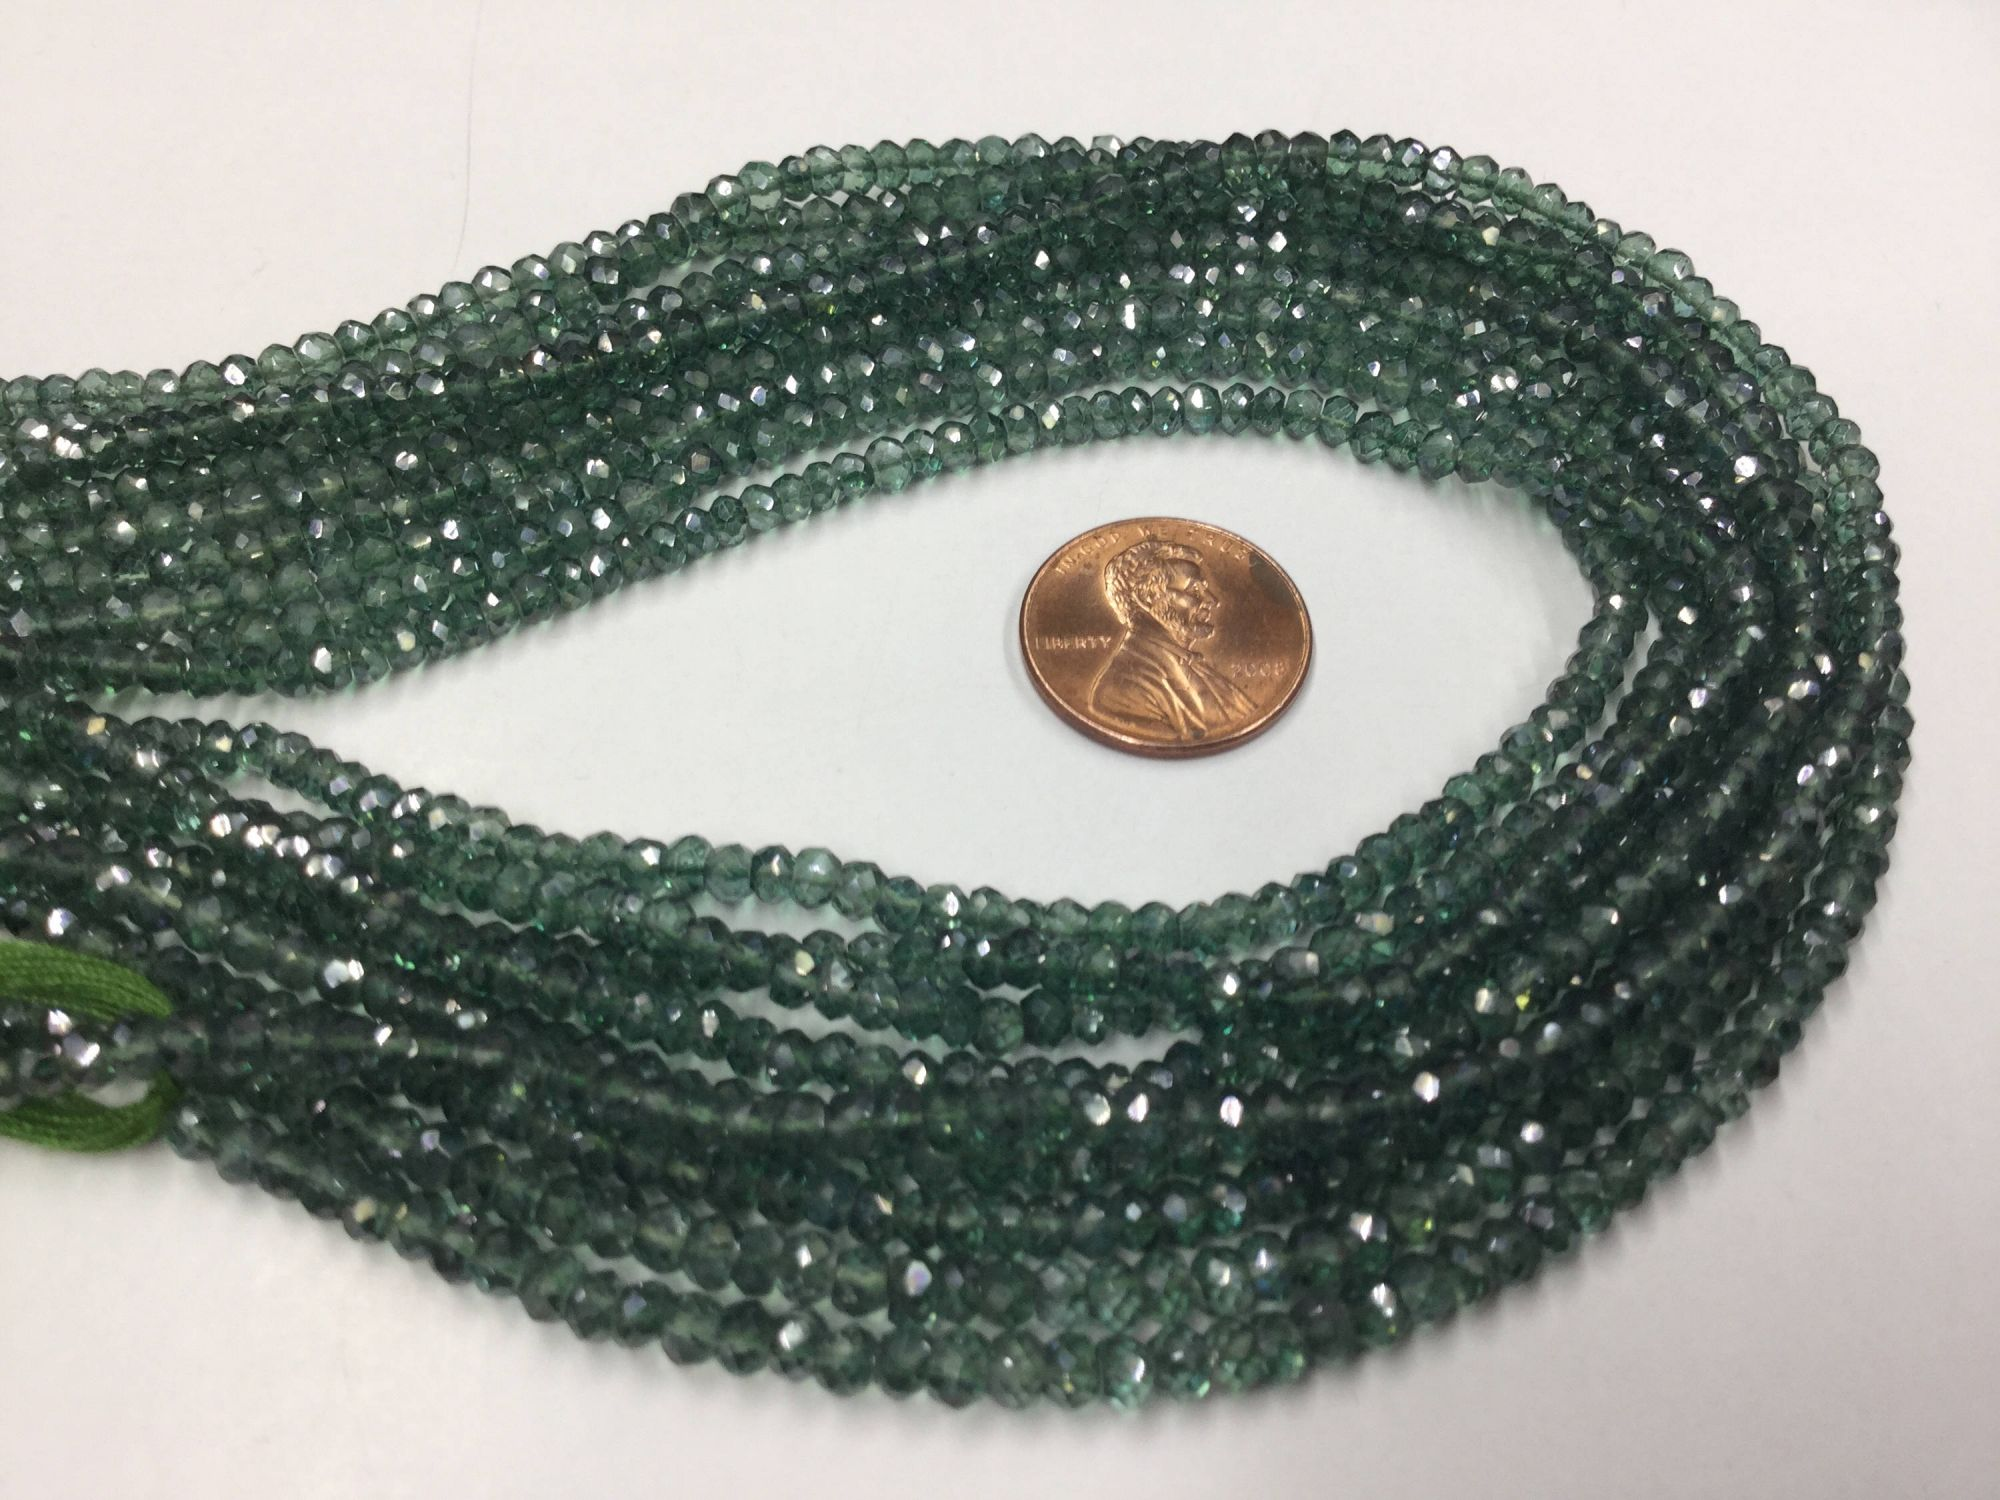 Green Mystic Quartz Rondelles Faceted